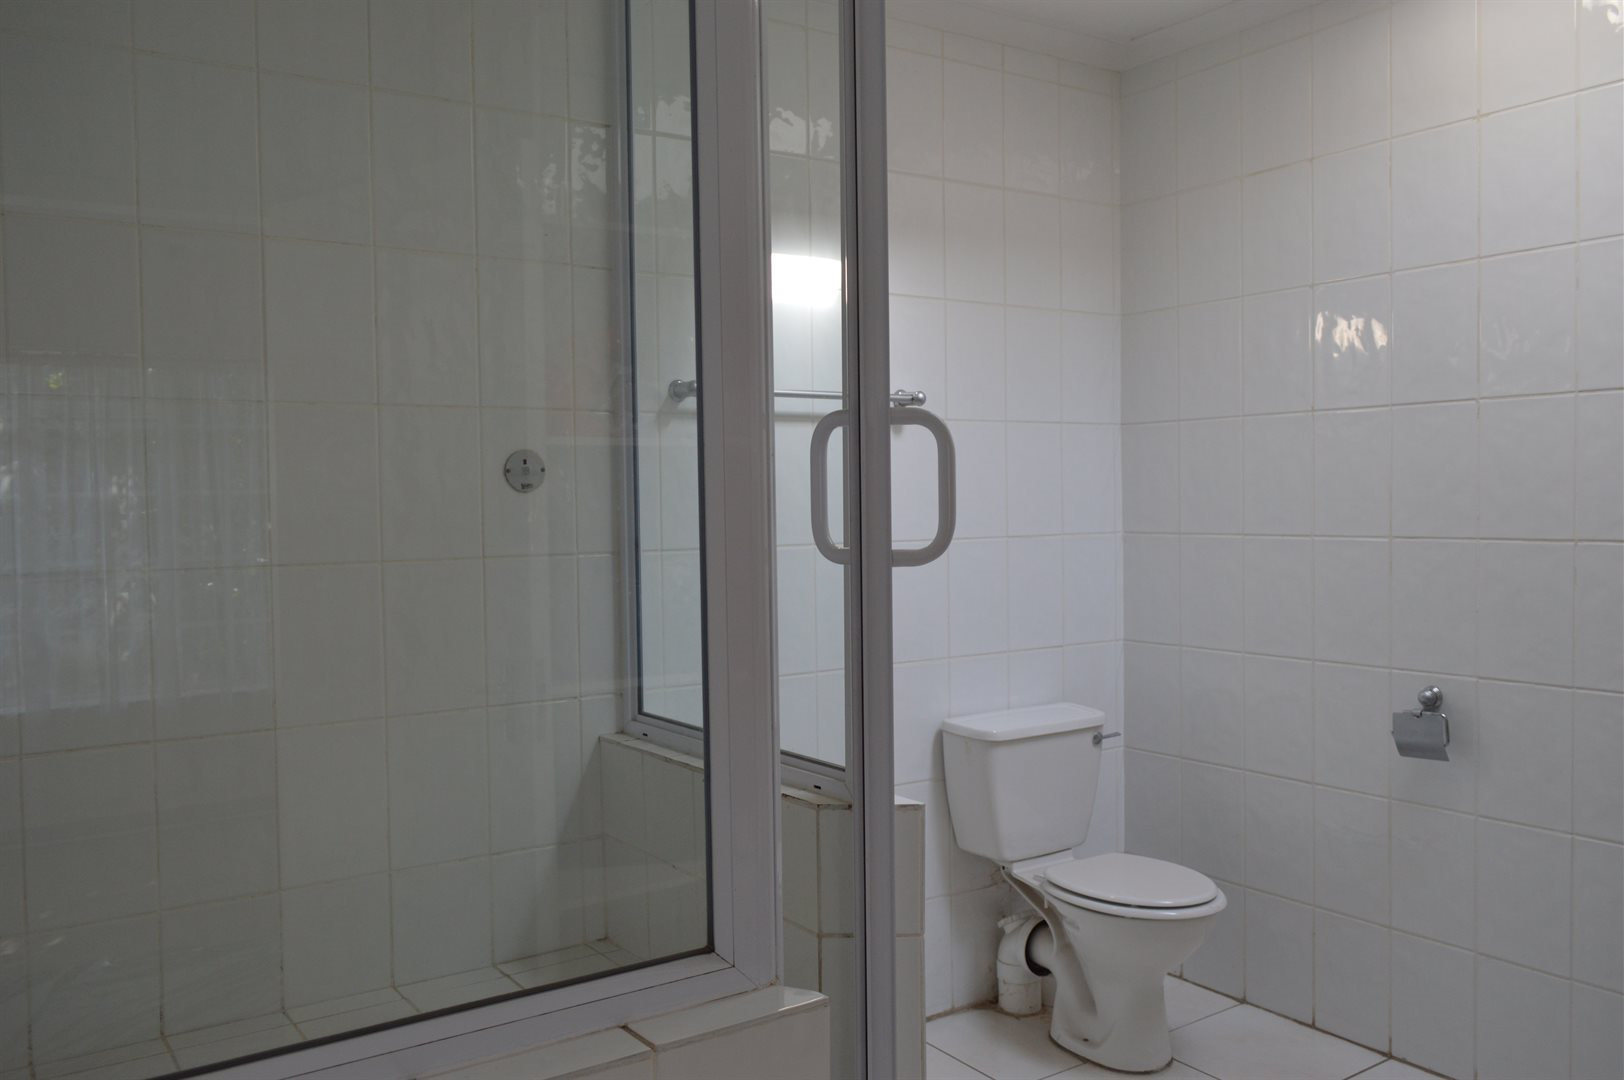 Highlands North property for sale. Ref No: 13649352. Picture no 15